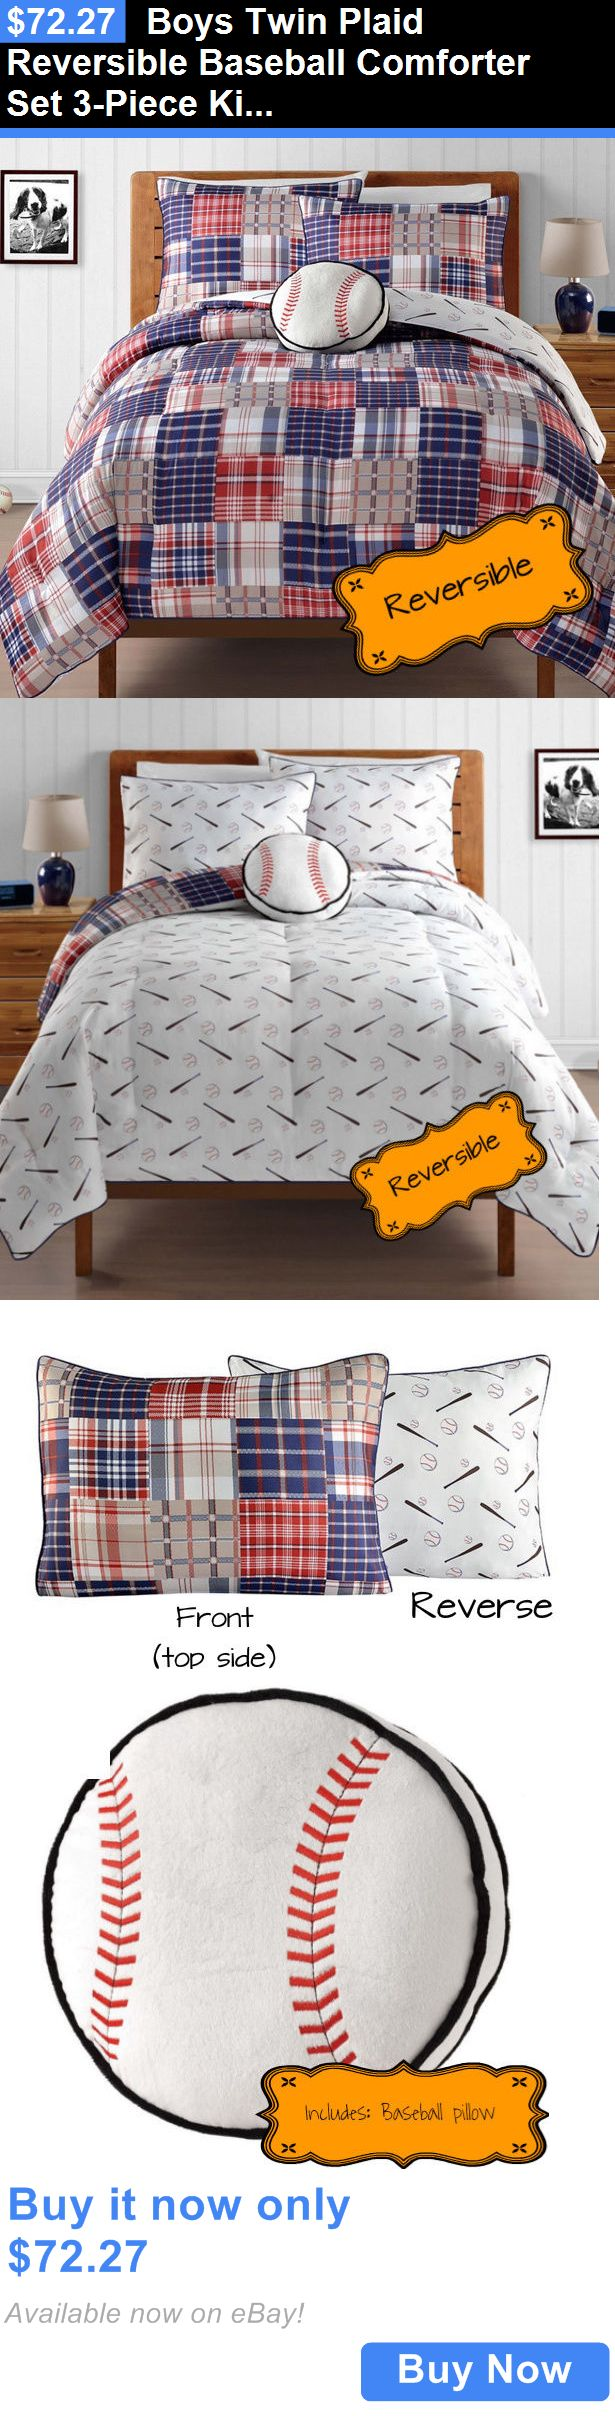 Nfl bedding for boys - Kids Bedding Boys Twin Plaid Reversible Baseball Comforter Set 3 Piece Kids Sports Bedding